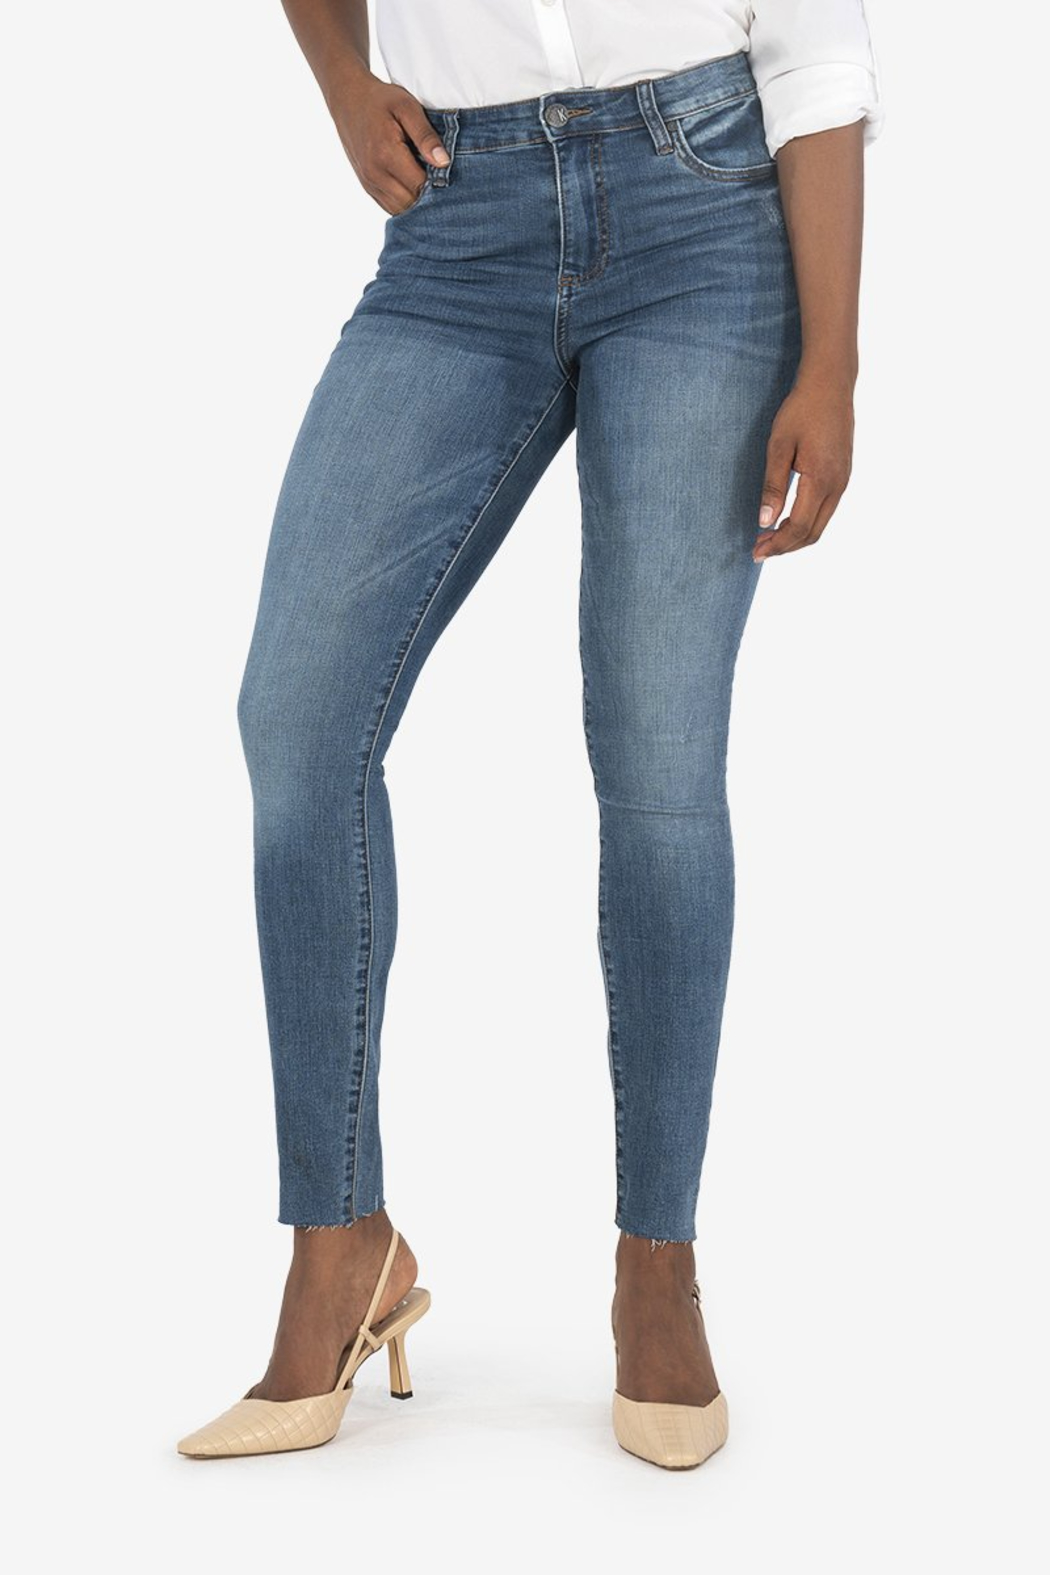 Kut from the Kloth Mia H/R Ankle Skinny - Main Image